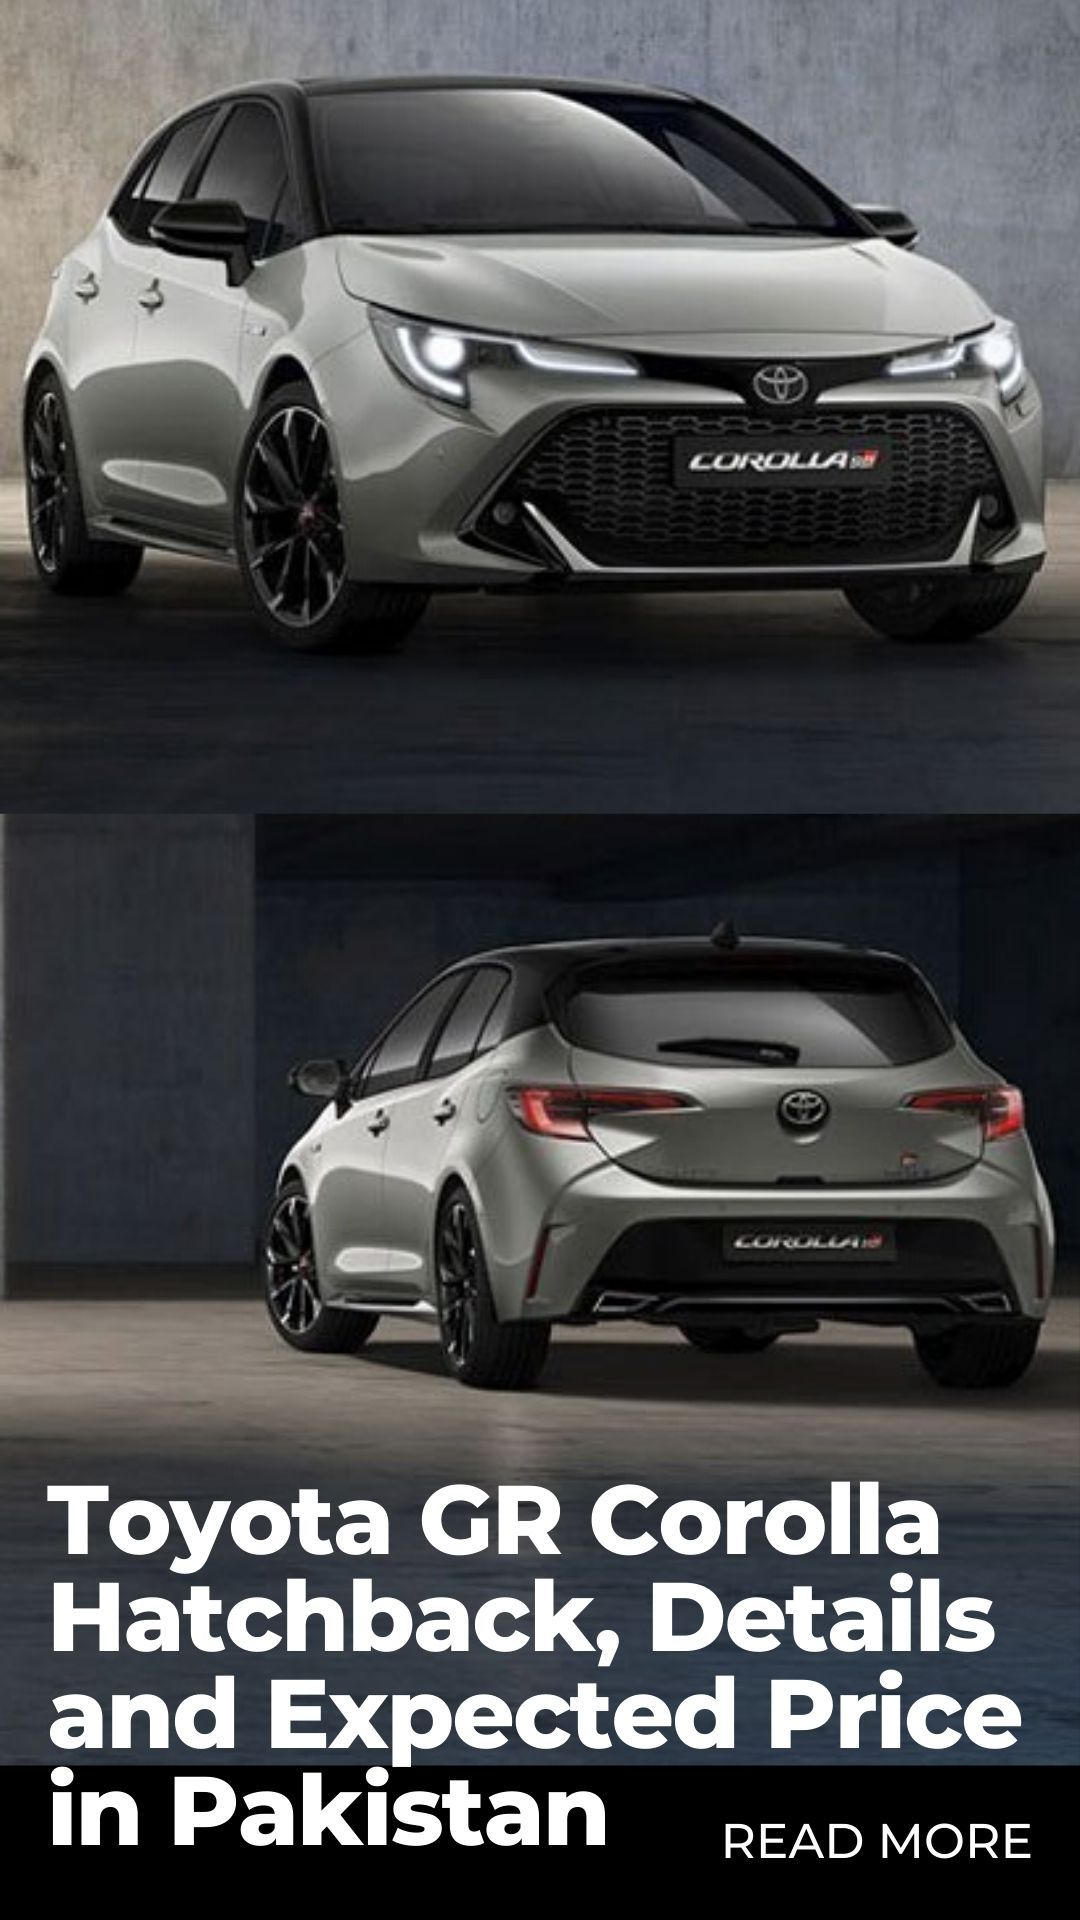 Toyota Corolla Hatchback Price In Pakistan In 2020 Corolla Hatchback Toyota Corolla Hatchback Hatchback